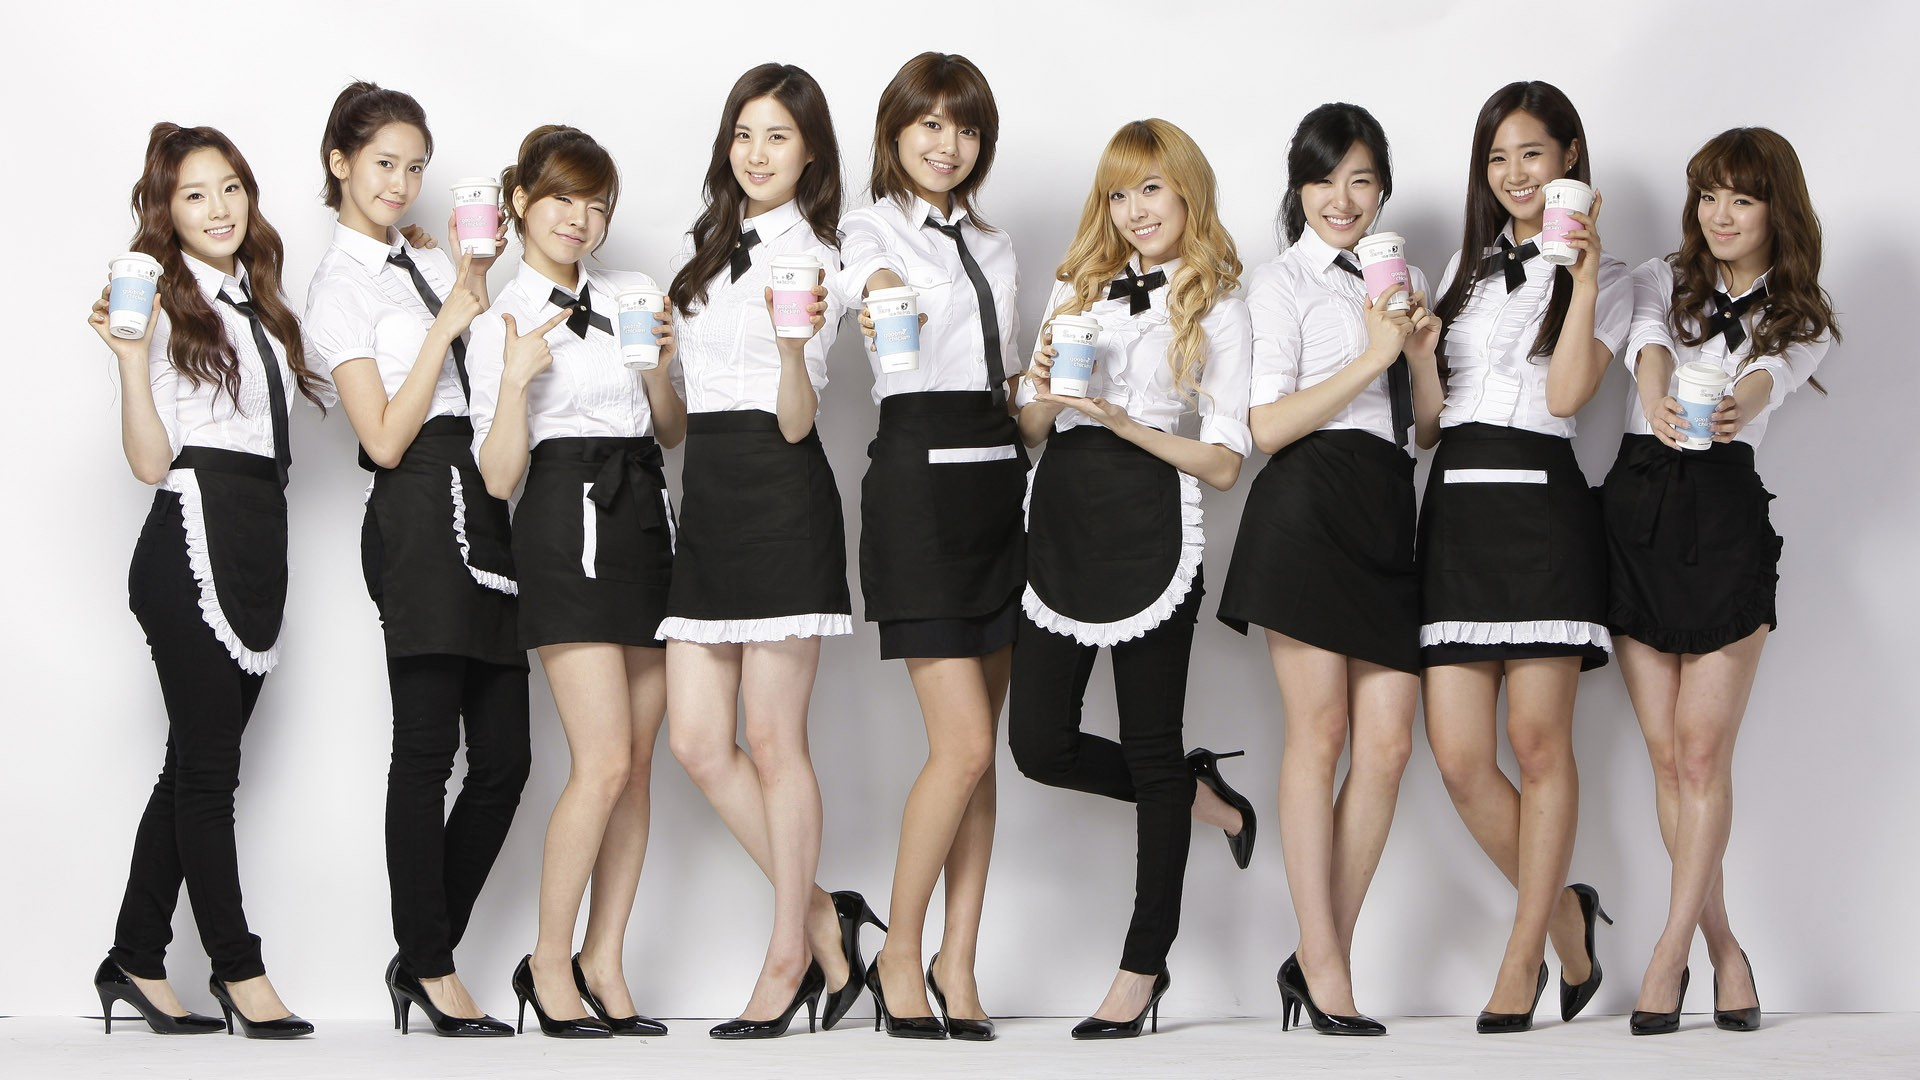 People 1920x1080 SNSD Girls' Generation Kim Taeyeon Lee Soonkyu Sunny Yoona Im Yoona Kim Hyoyeon Seohyun Tiffany Hwang Kwon Yuri Jessica Jung Choi Sooyoung women Asian brunette black hair high heels skirt